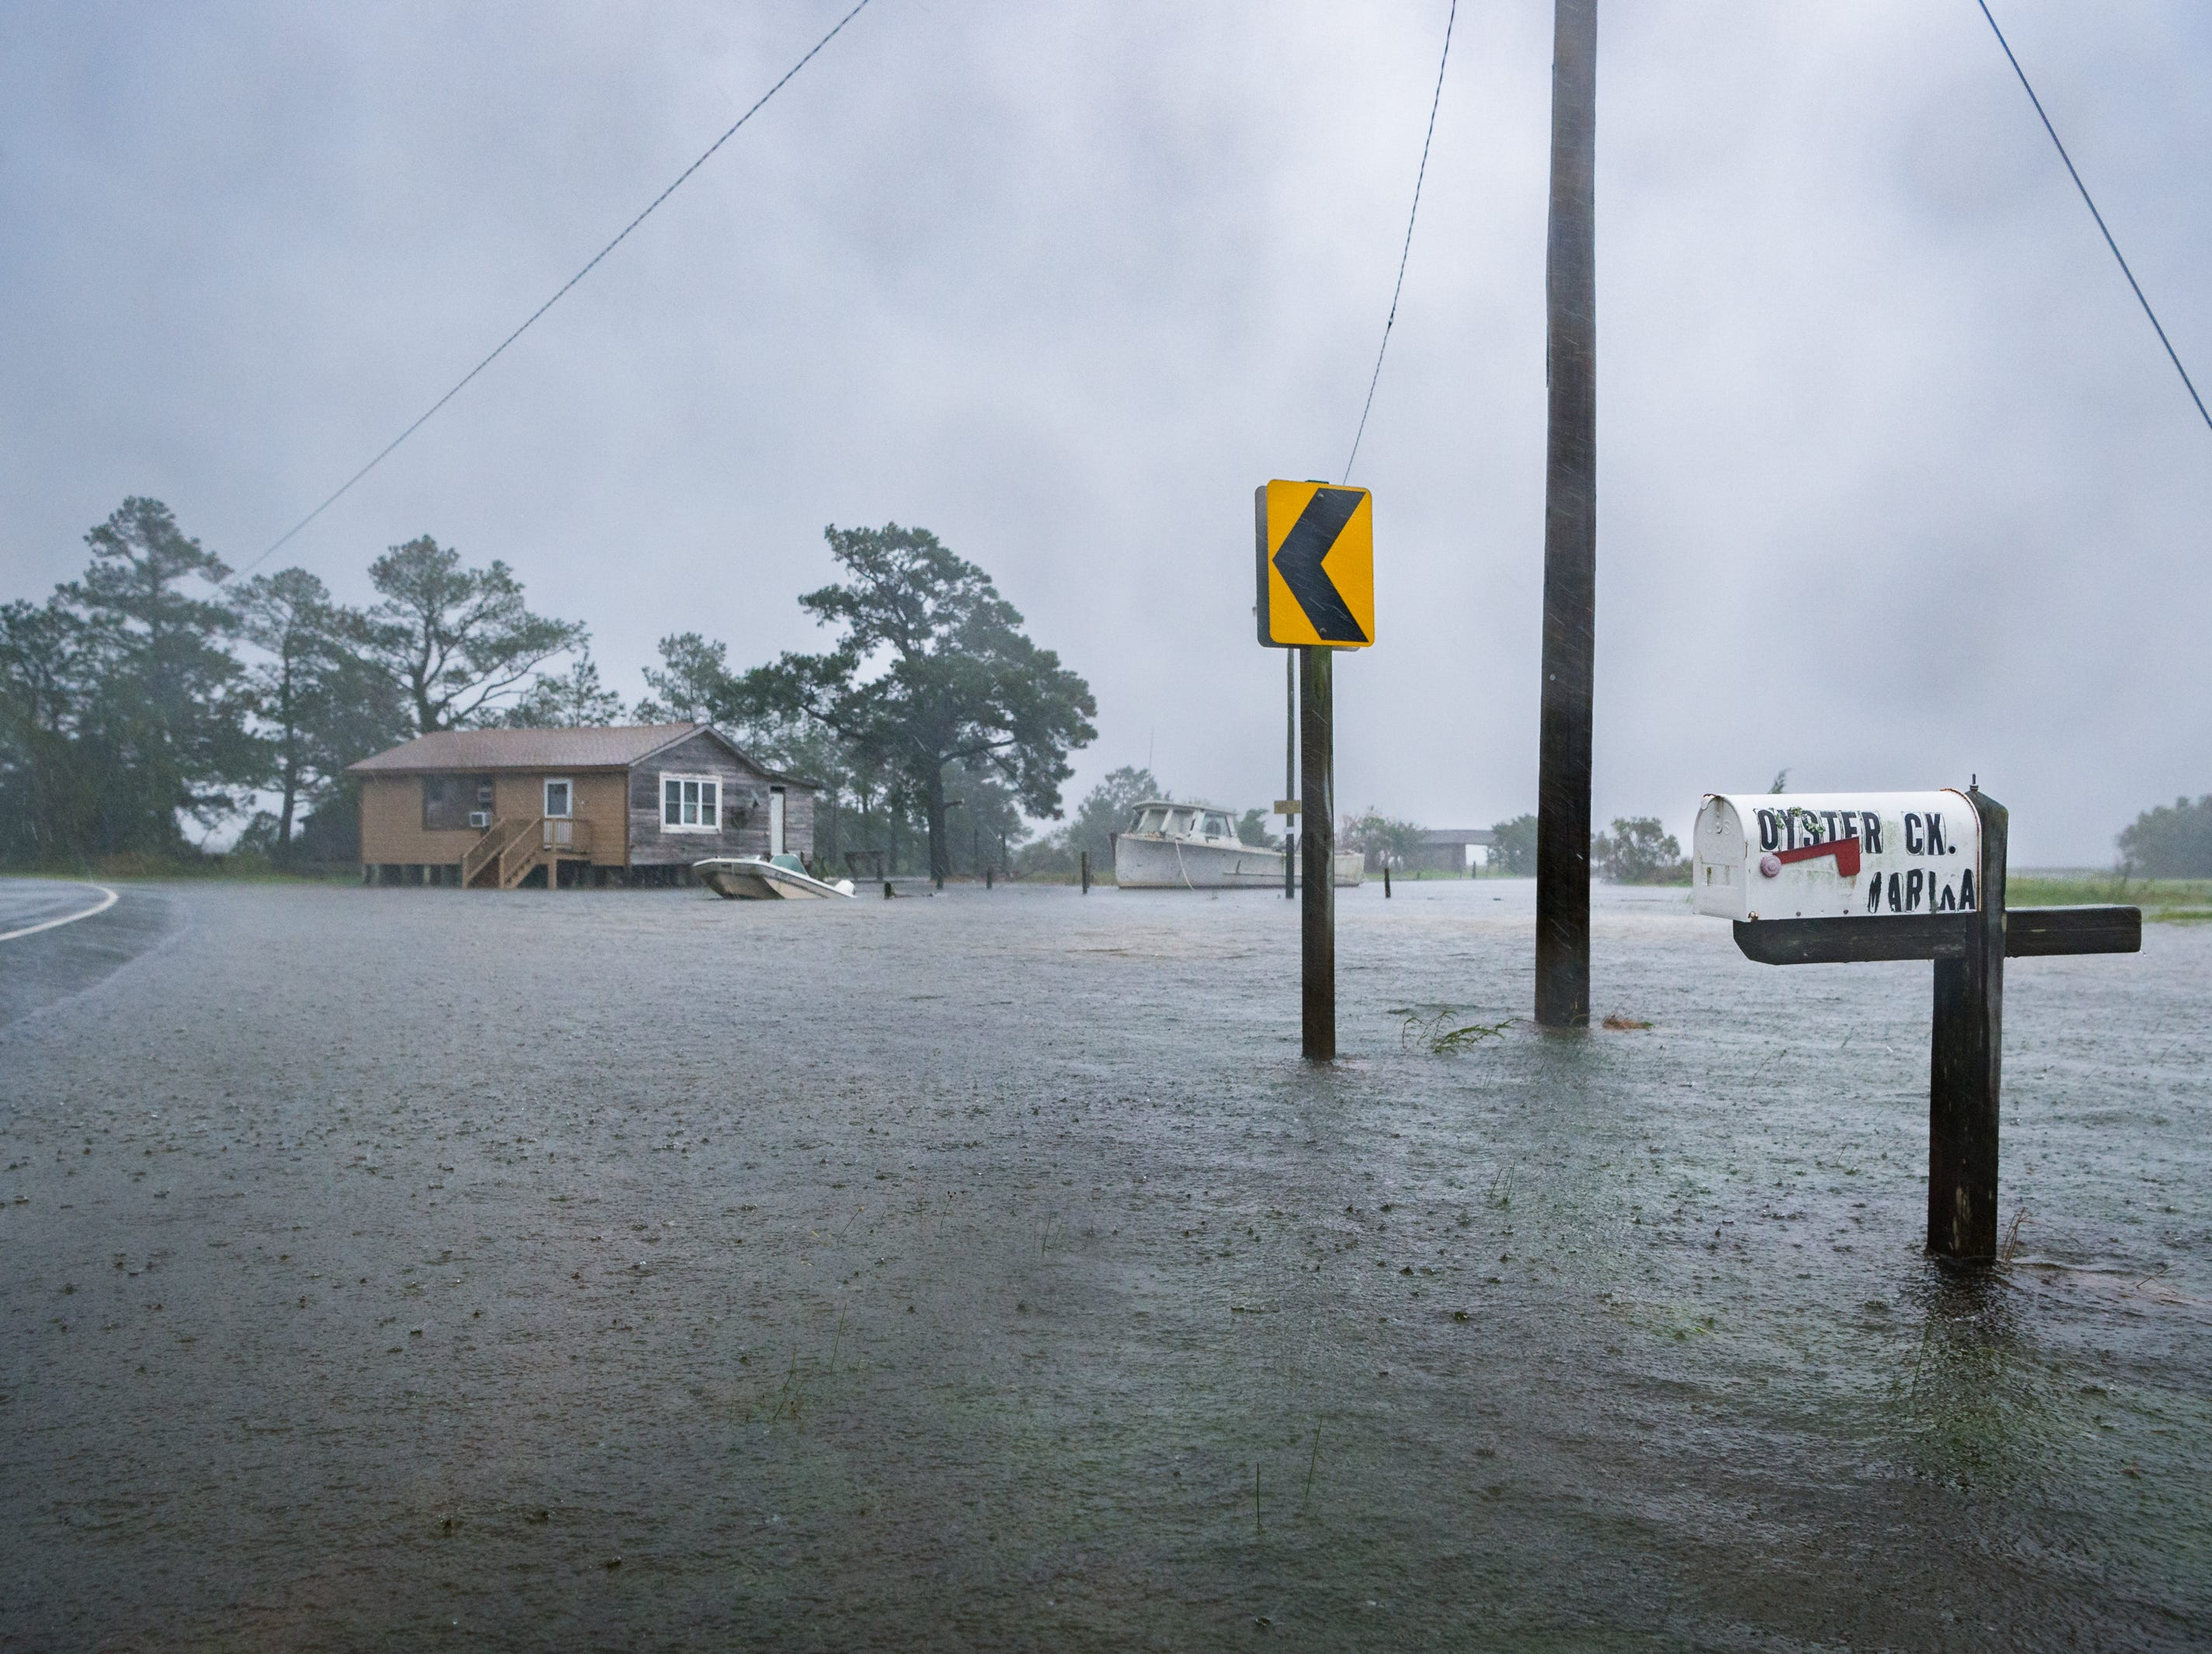 A mailbox on Oyster Creek Street in Swan Quarter, N.C sits partially submerged as heavy rain and wind increases with Hurricane Florence moving closer to the coastline Sept. 13, 2018.